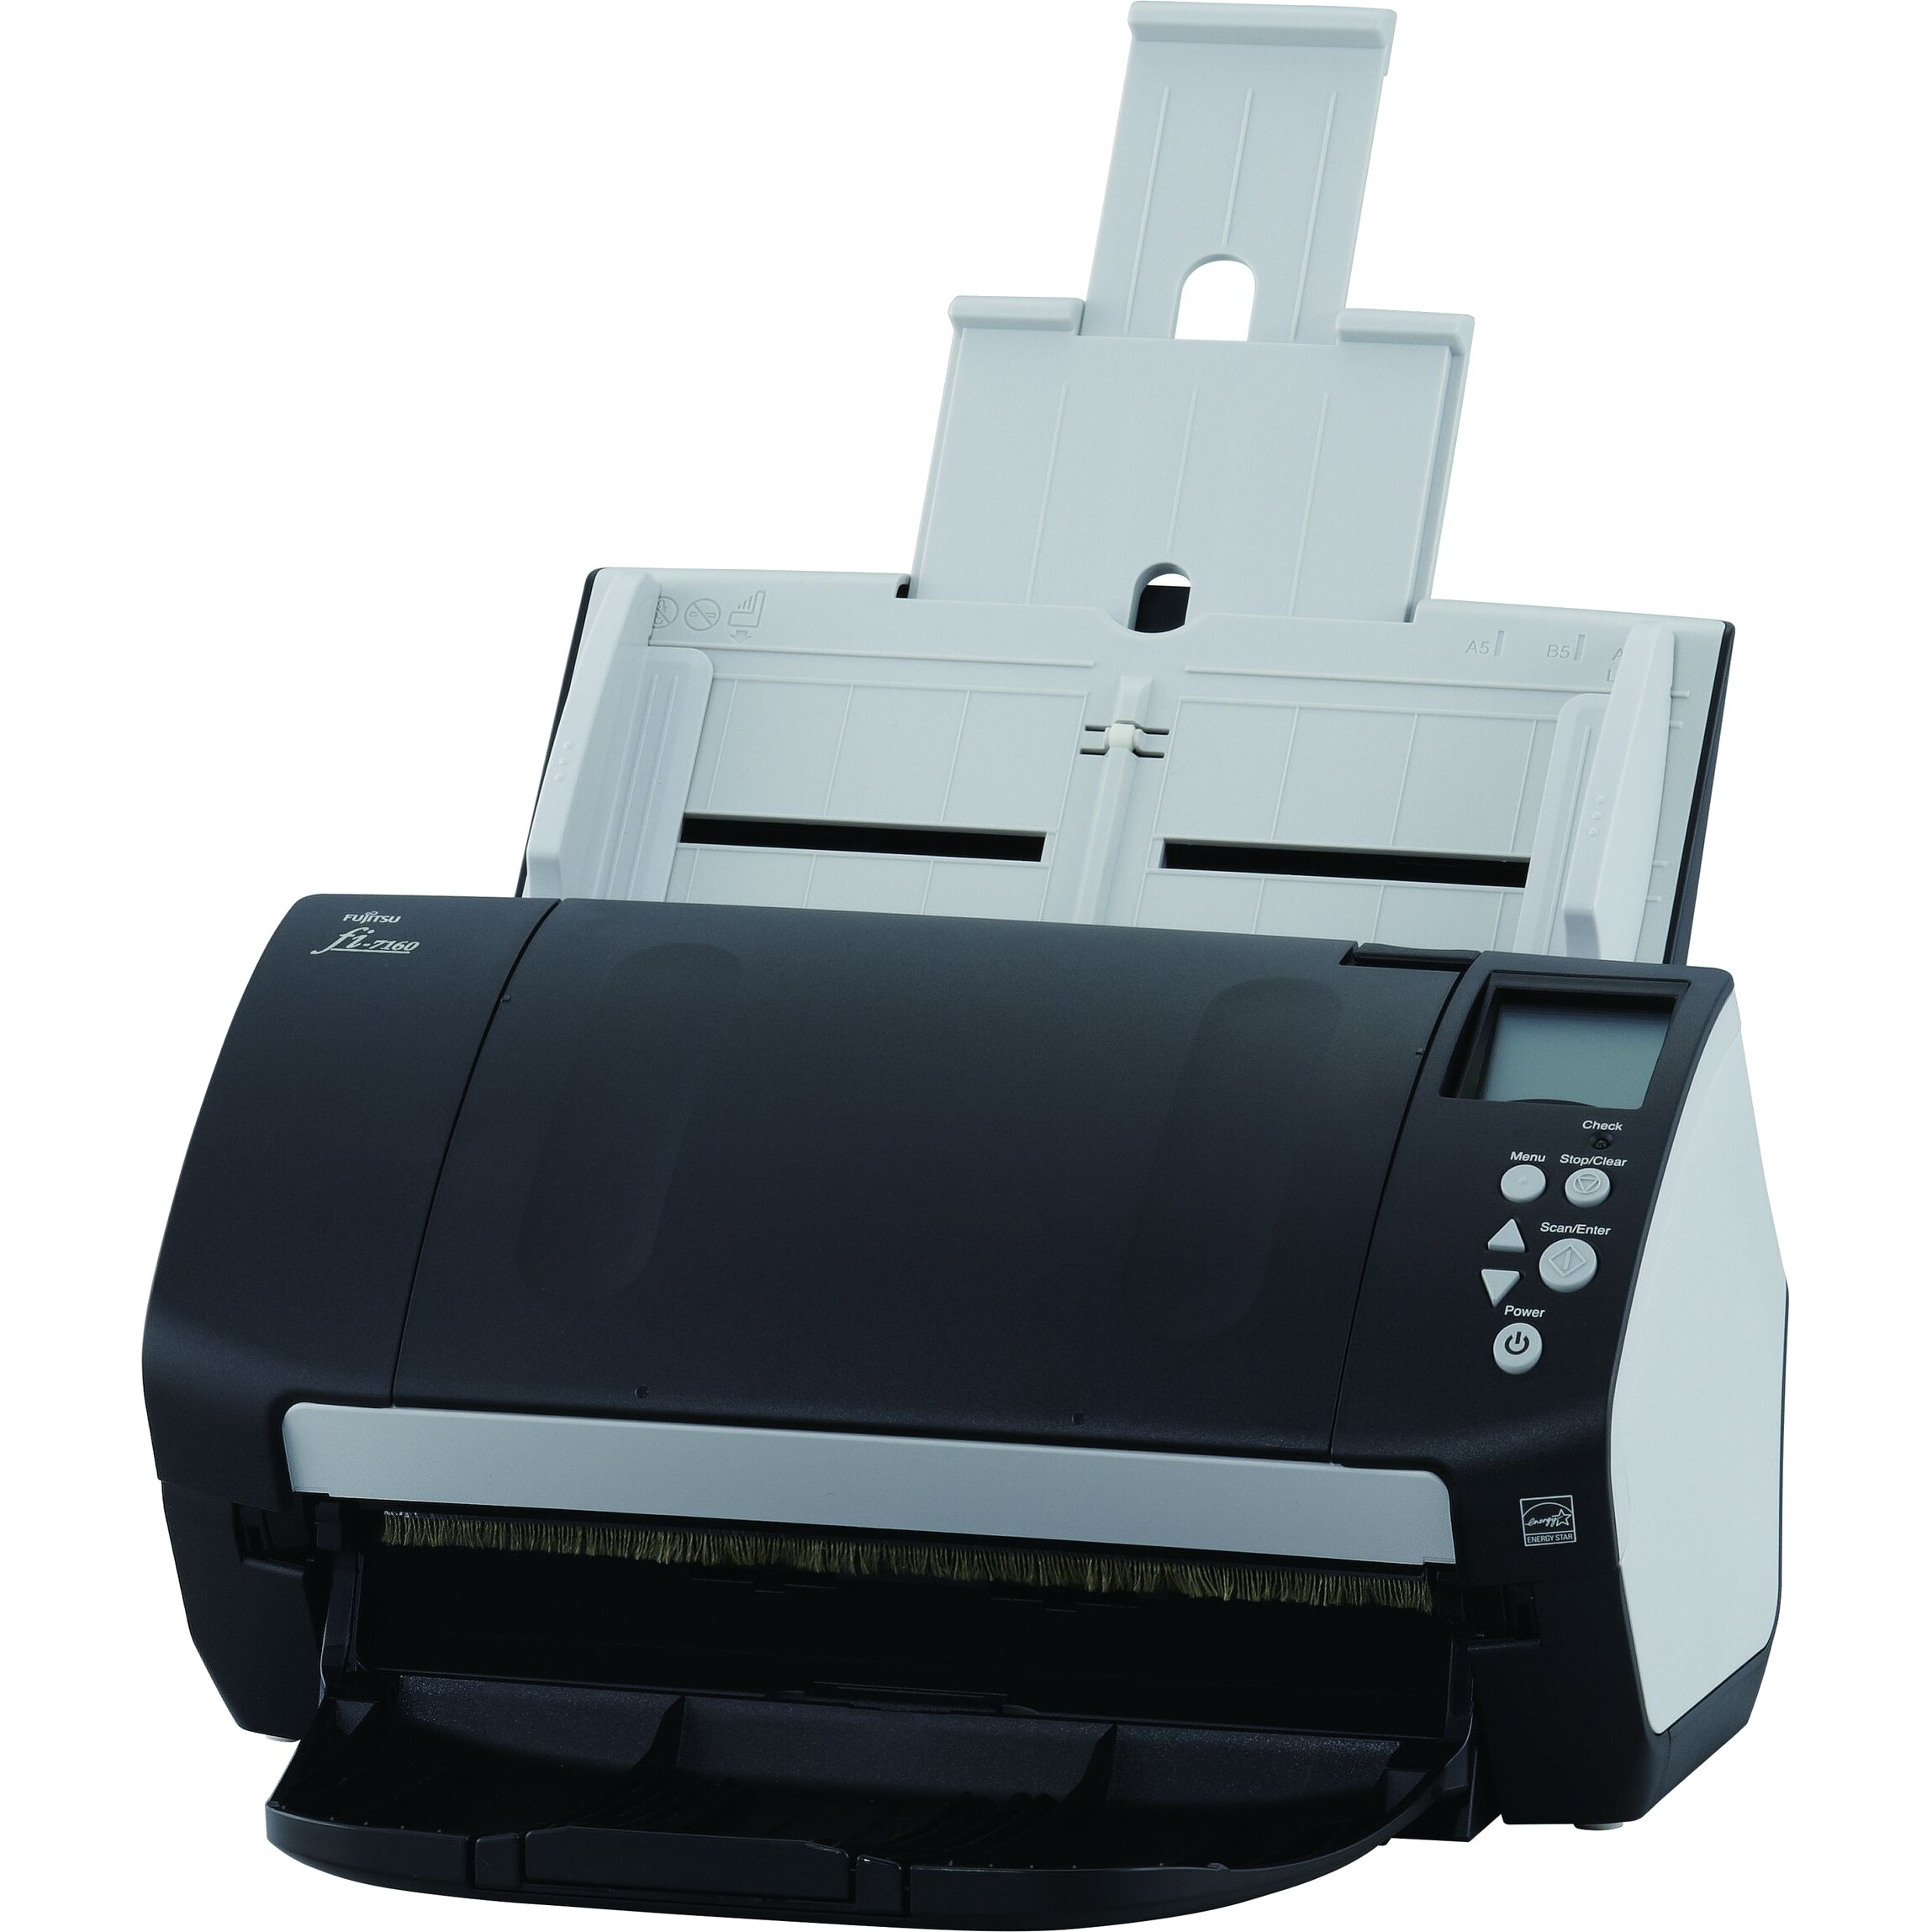 Fujitsu Fi-7160 Sheetfed Scanner - 600 dpi Optical - 24-bit Color - 8-bit Grayscale - 60 ppm (Mono) - 60 ppm (Color) - USB 0